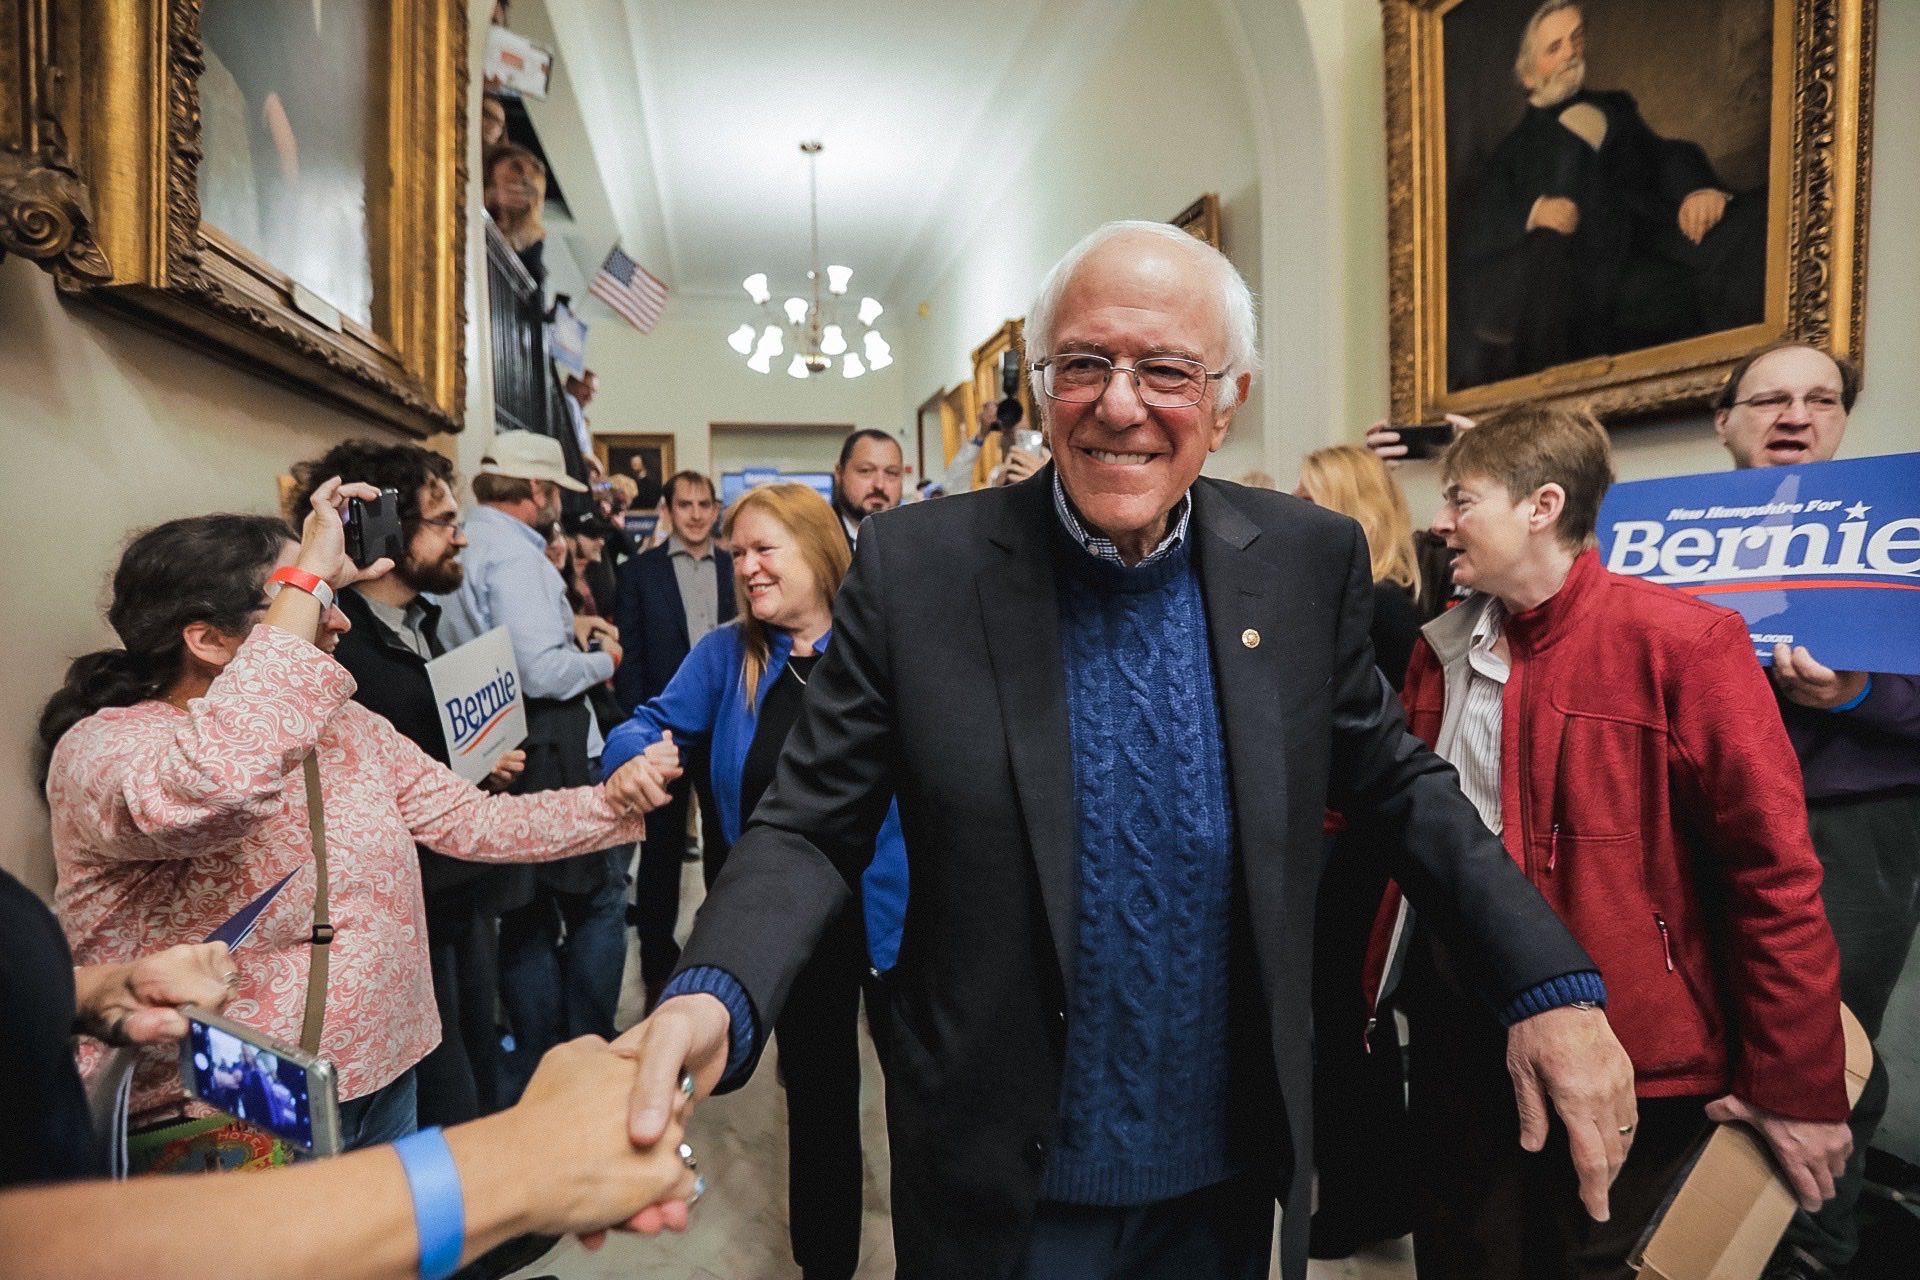 Sanders with double digit lead on Eve of Nevada caucuses